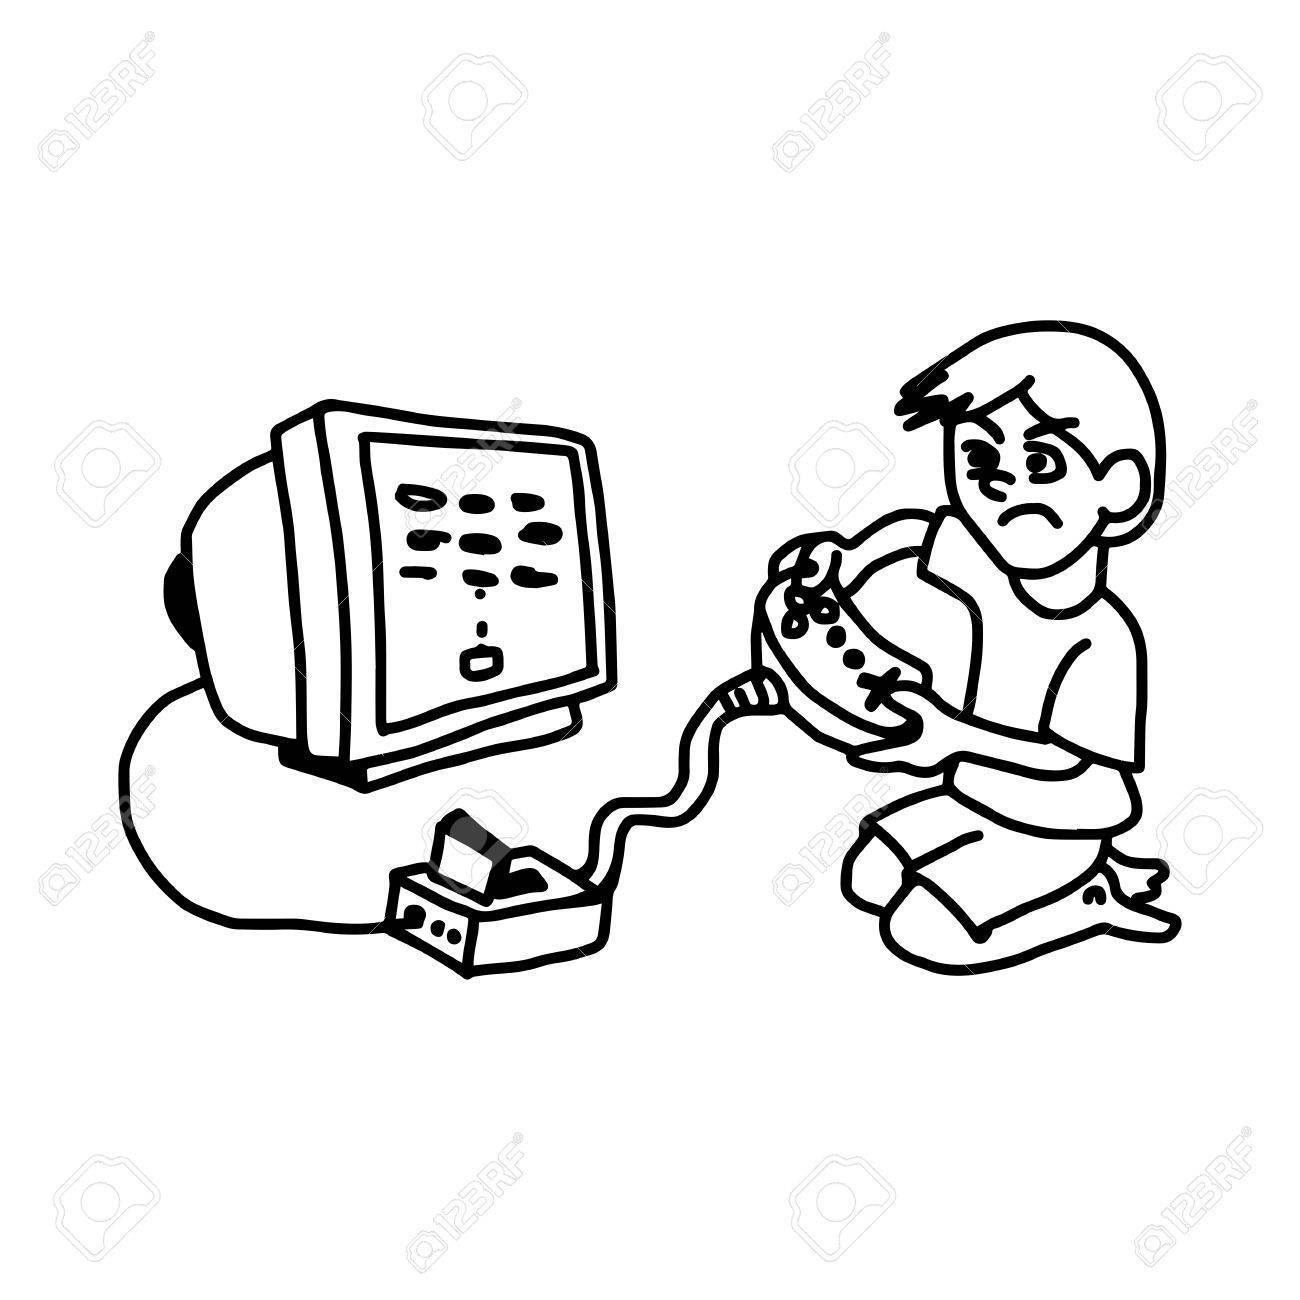 1300x1300 Boy Playing Video Game On Television Illustration Vector Doodl